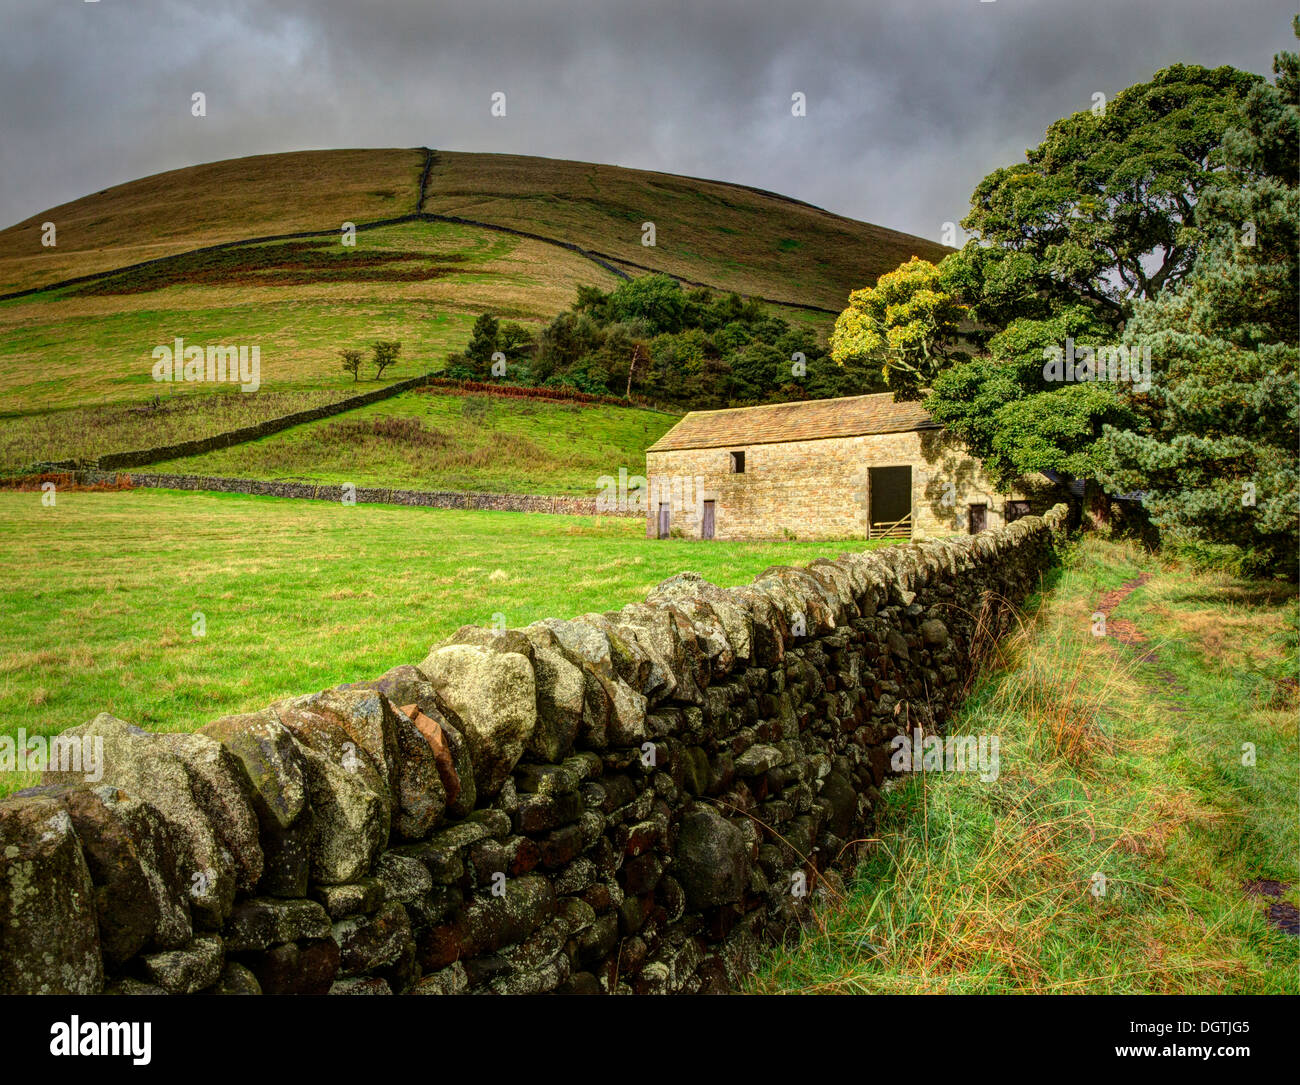 Field barn at the entrance to Crowden Brook on Kinder Scout near Edale in the Derbyshire Peak District - Stock Image